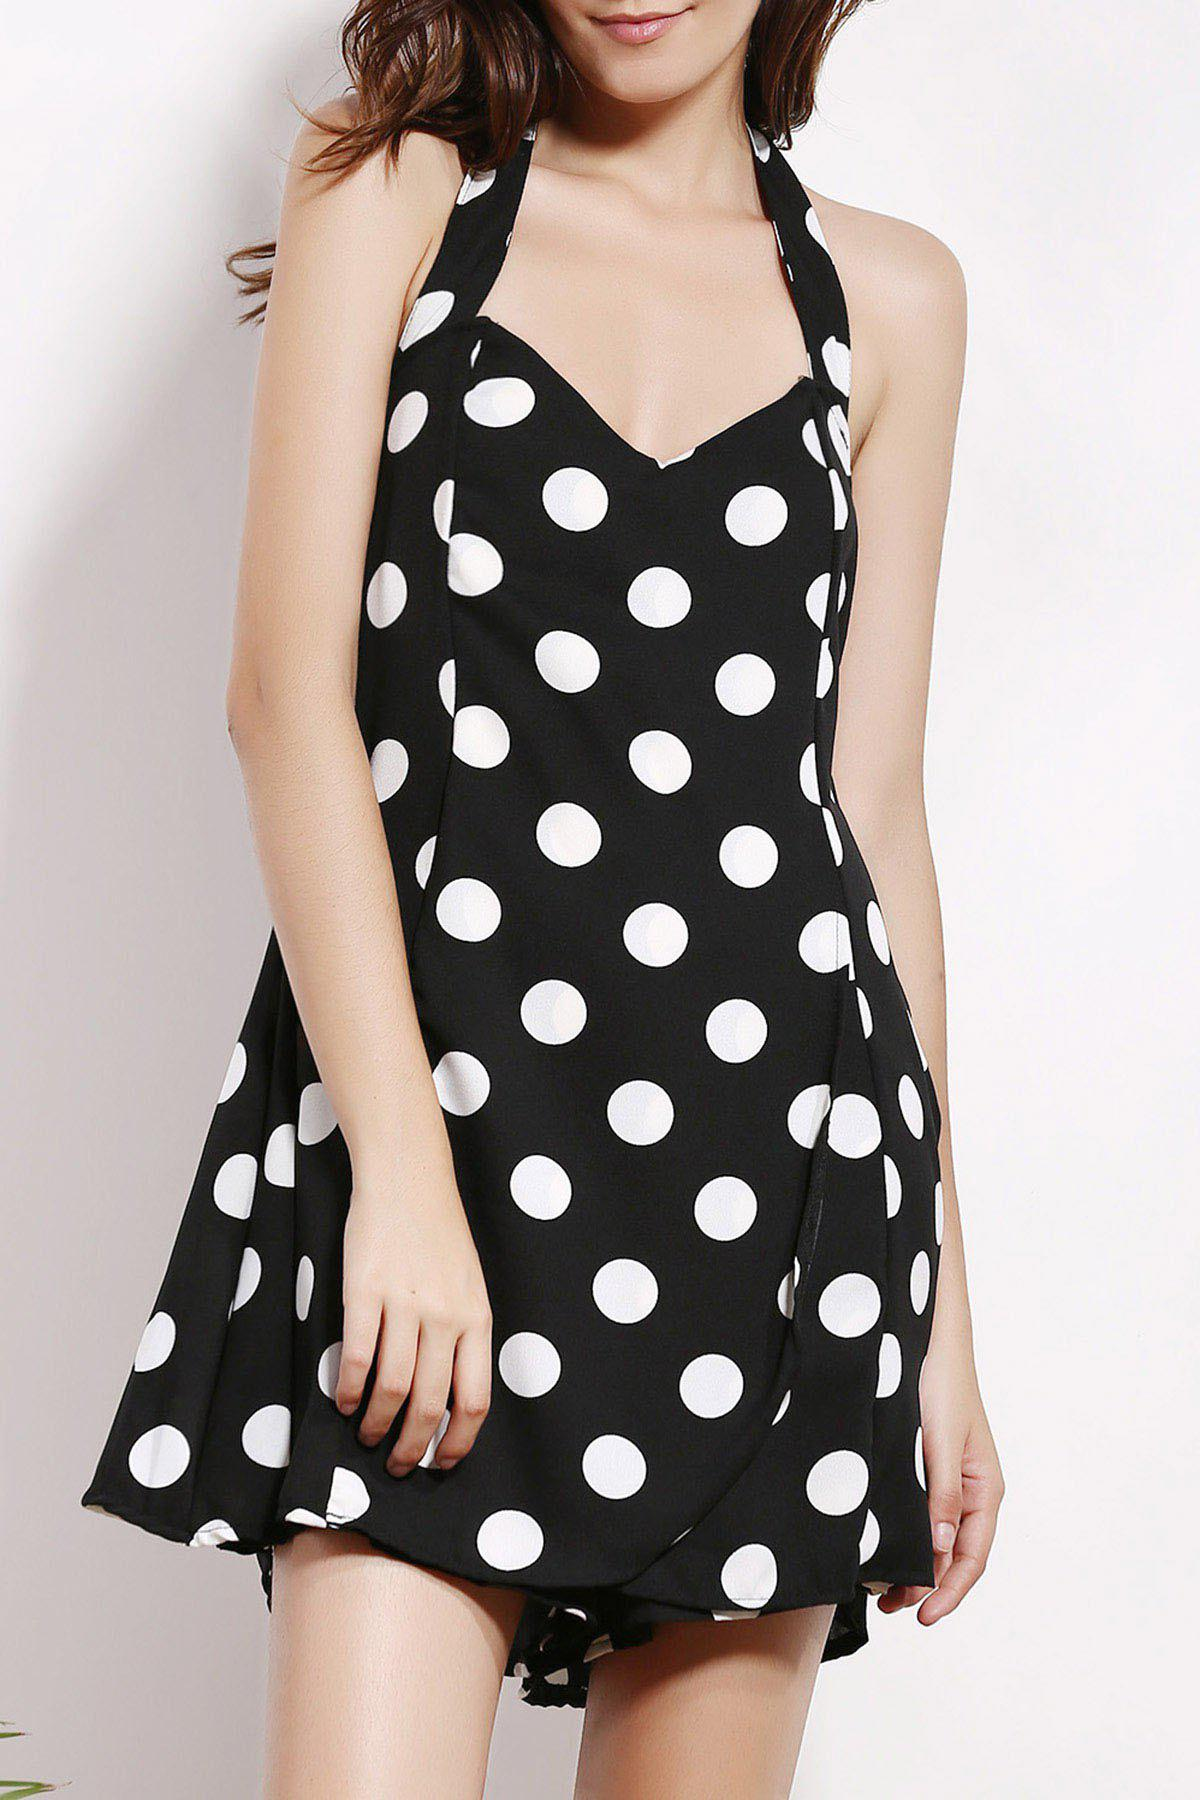 Stylish Halter Sleeveless Backless Polka Dot Women's Playsuit - BLACK 2XL